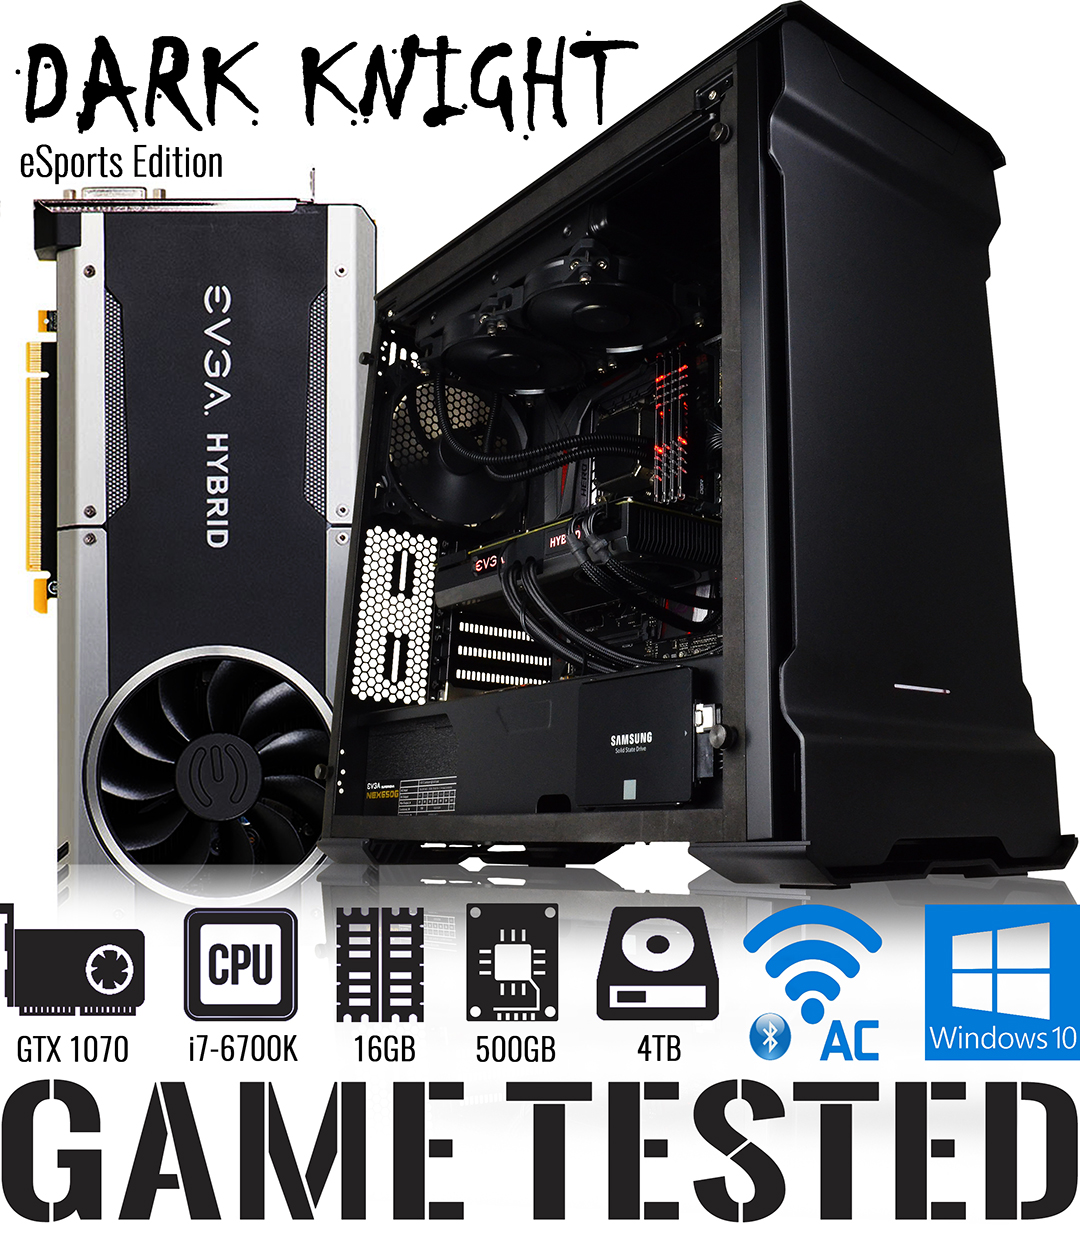 GGPC DARK KNIGHT GAMING PC